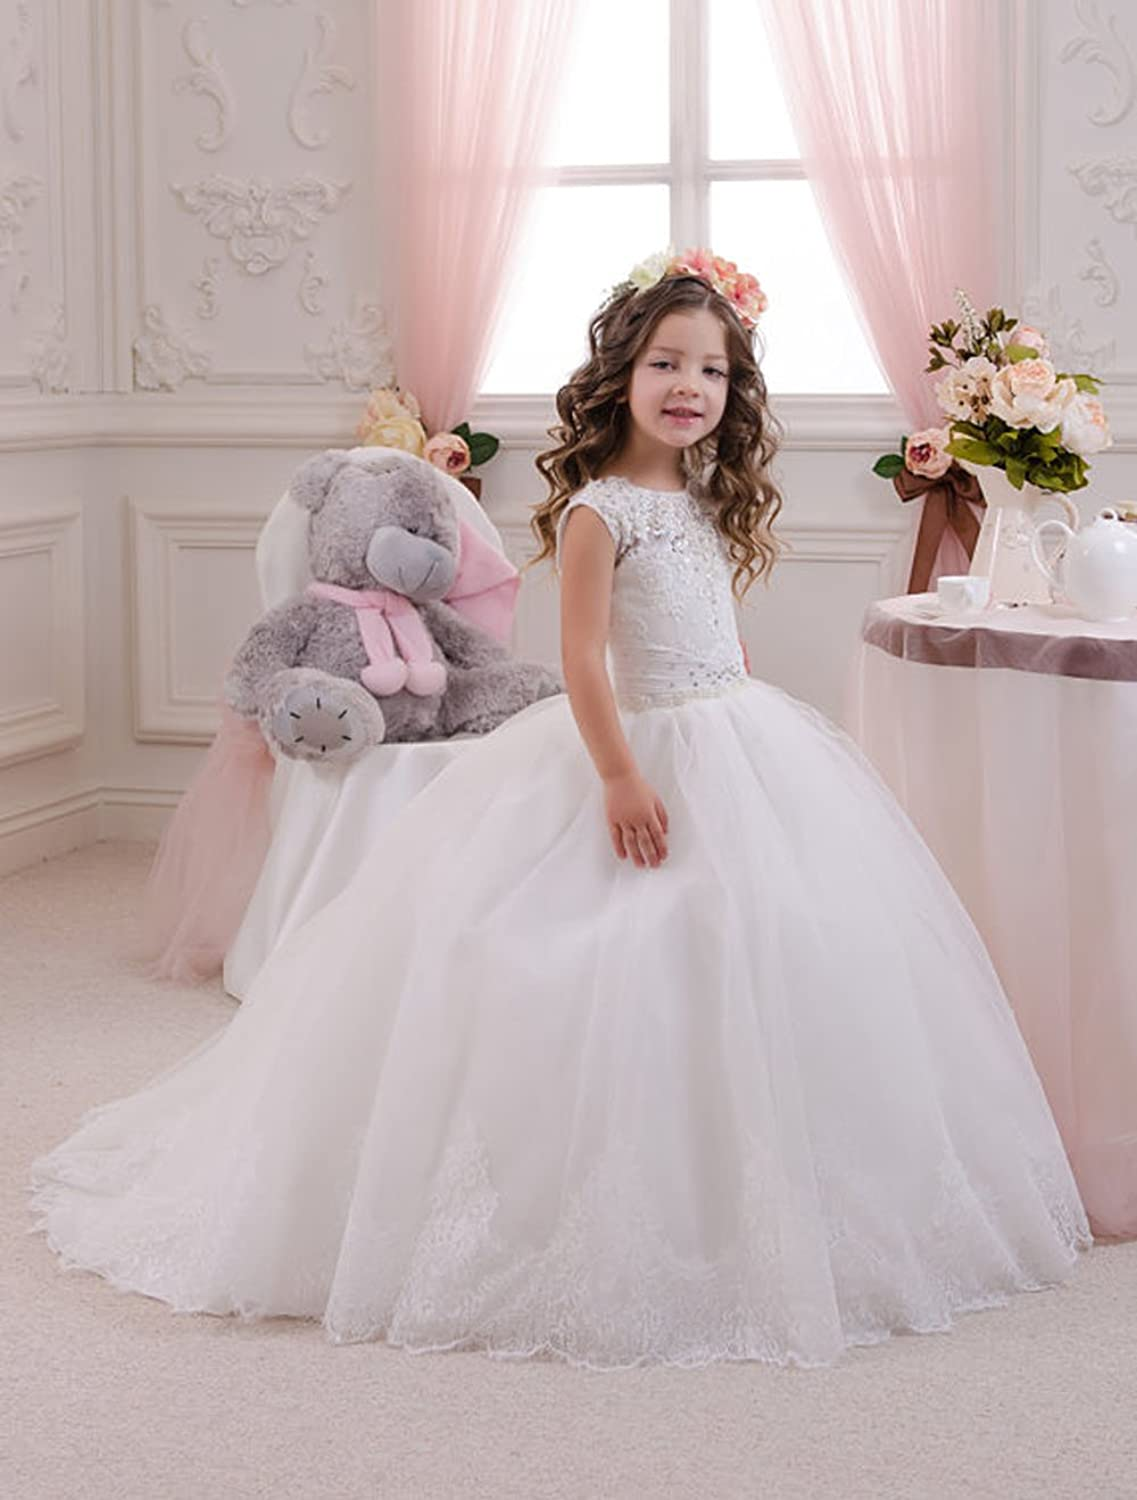 Coco Girls Long Lace/Tulle Wedding girl princess dress kids dress Communion Flower Girl Dress